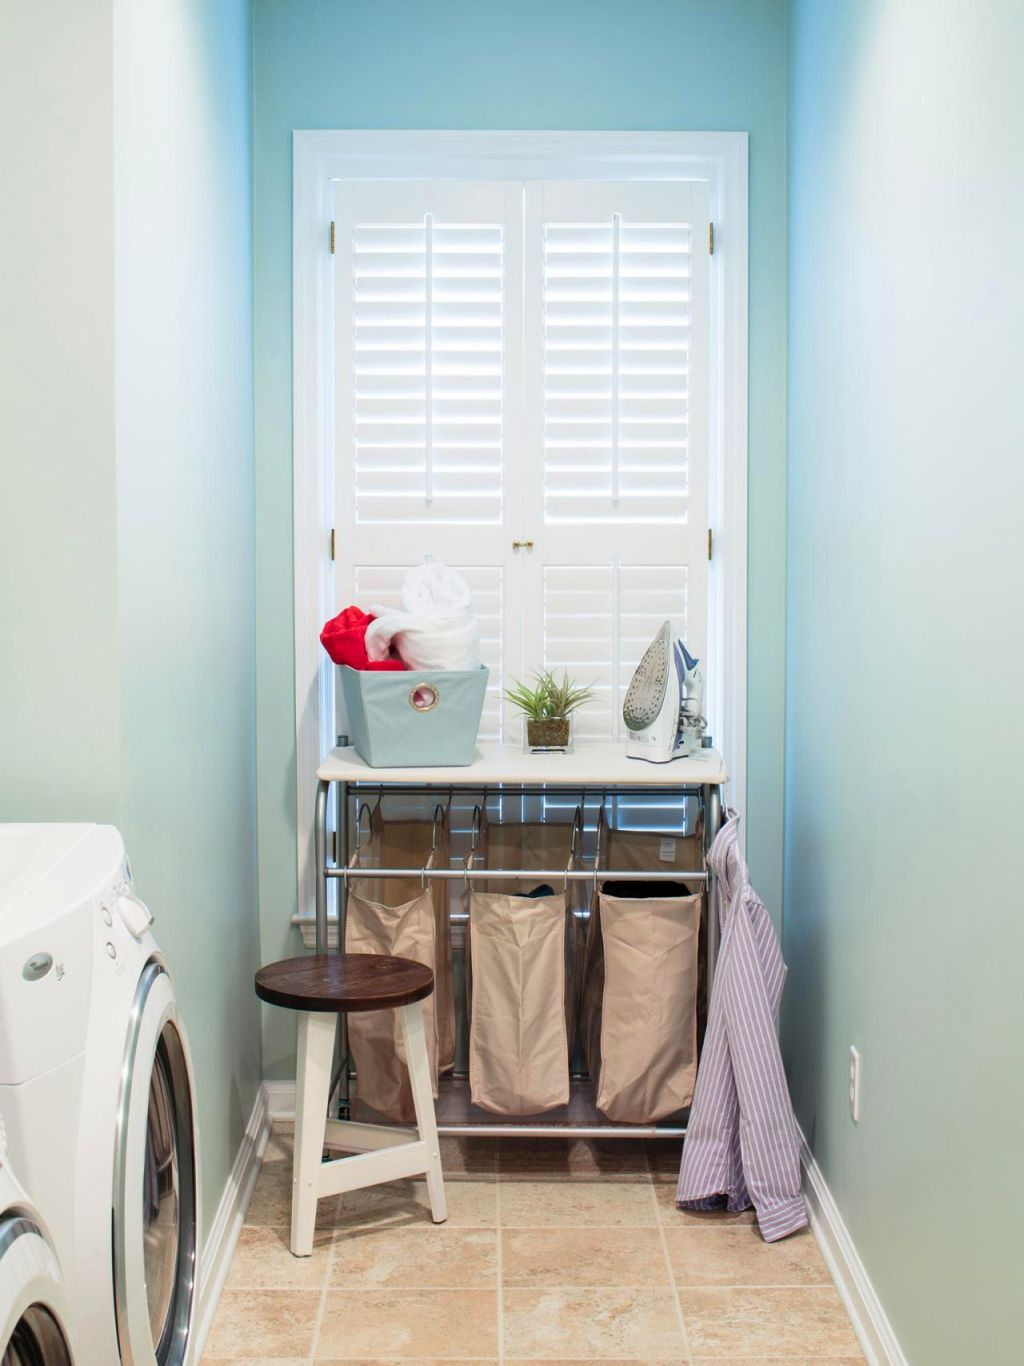 Laundry Room Hanging Ideas Clothes Hanger